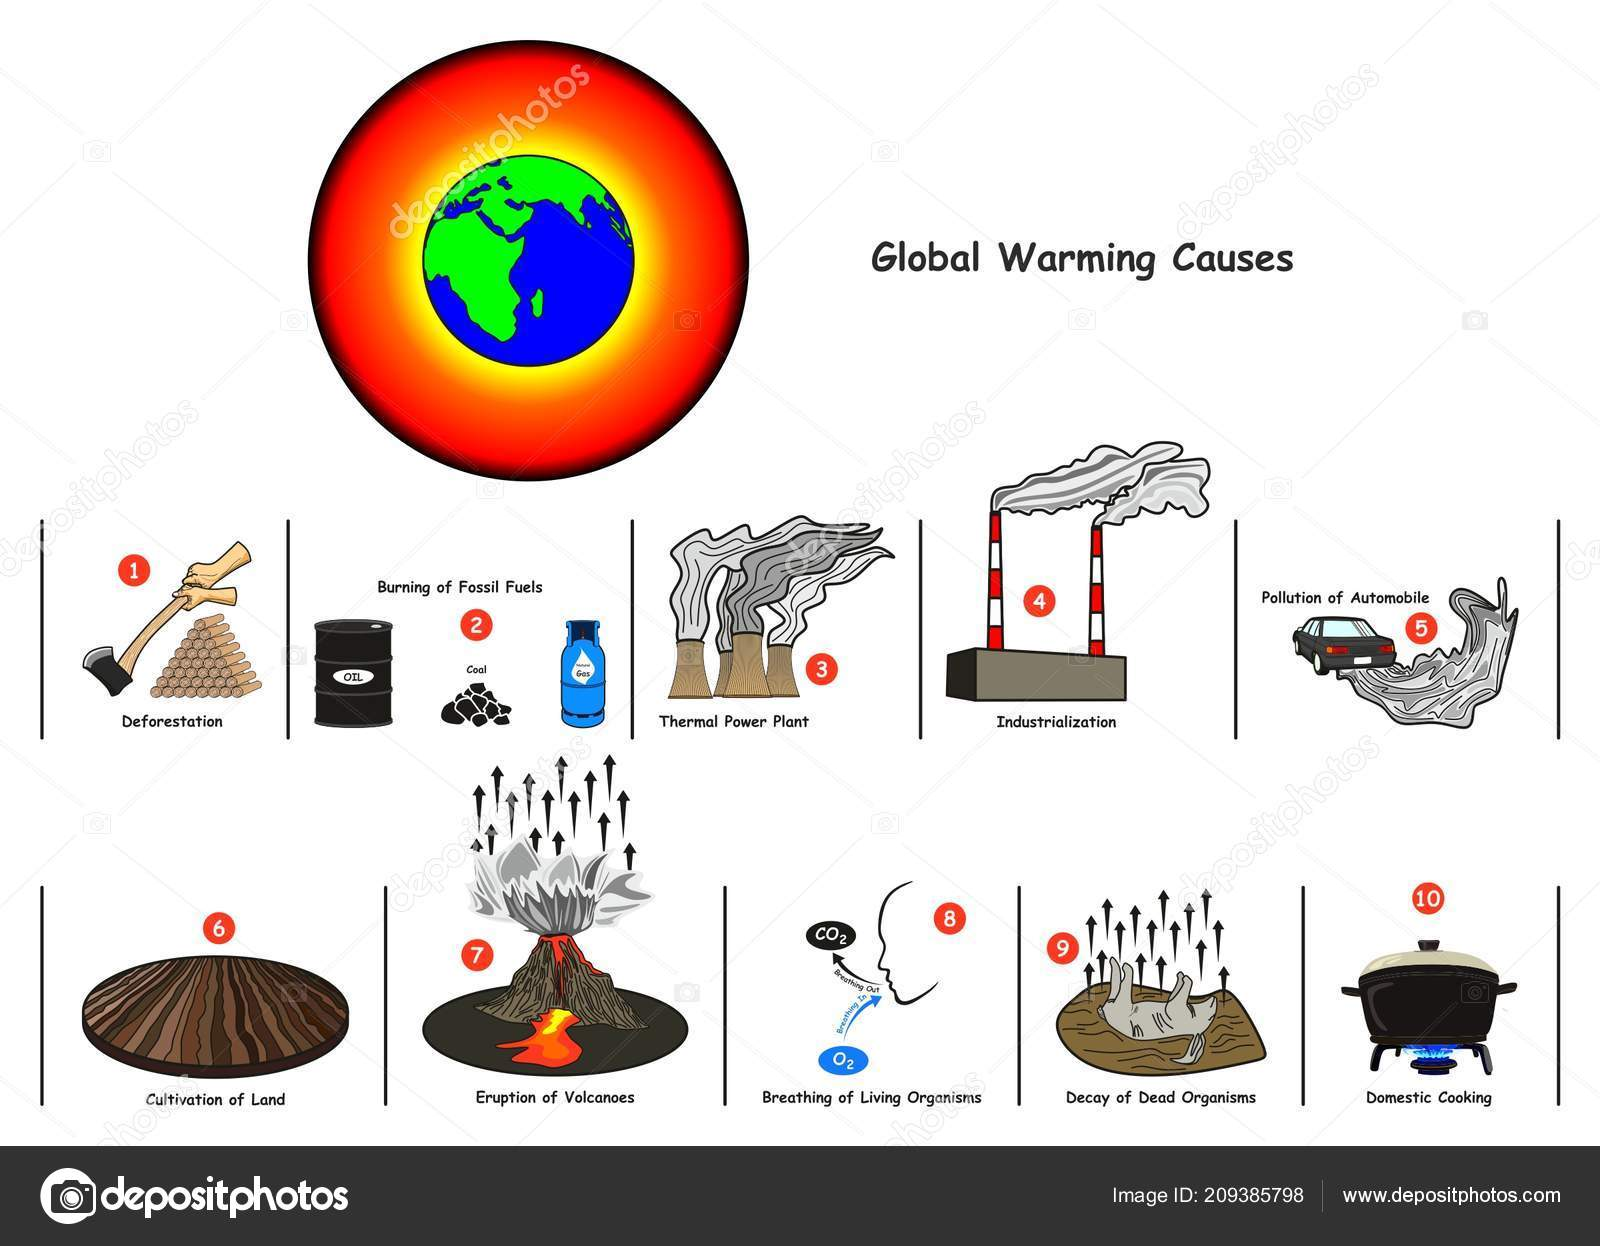 Global Warming Causes Infographic Diagram Including Deforestation